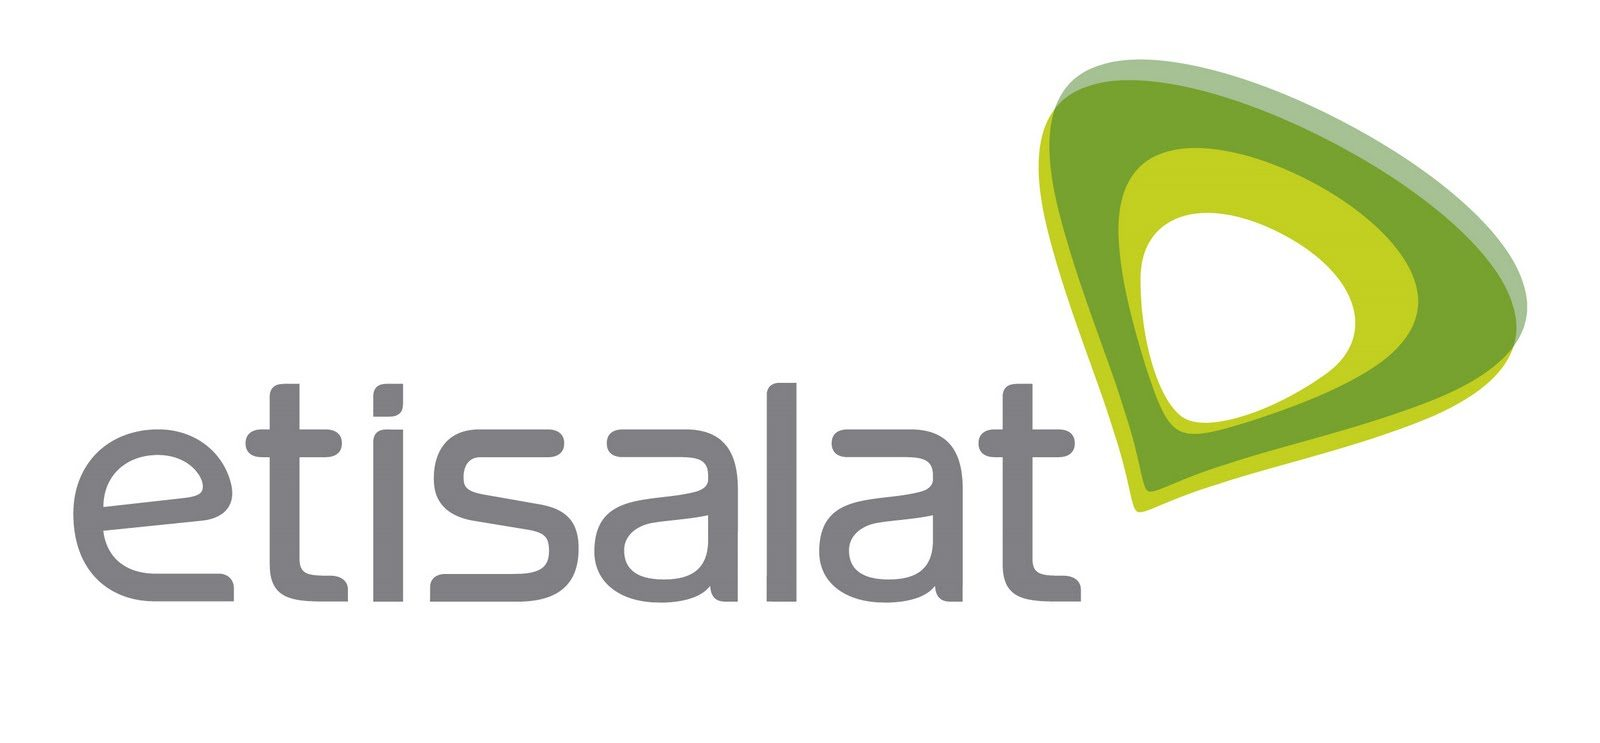 etisalat internet business plan